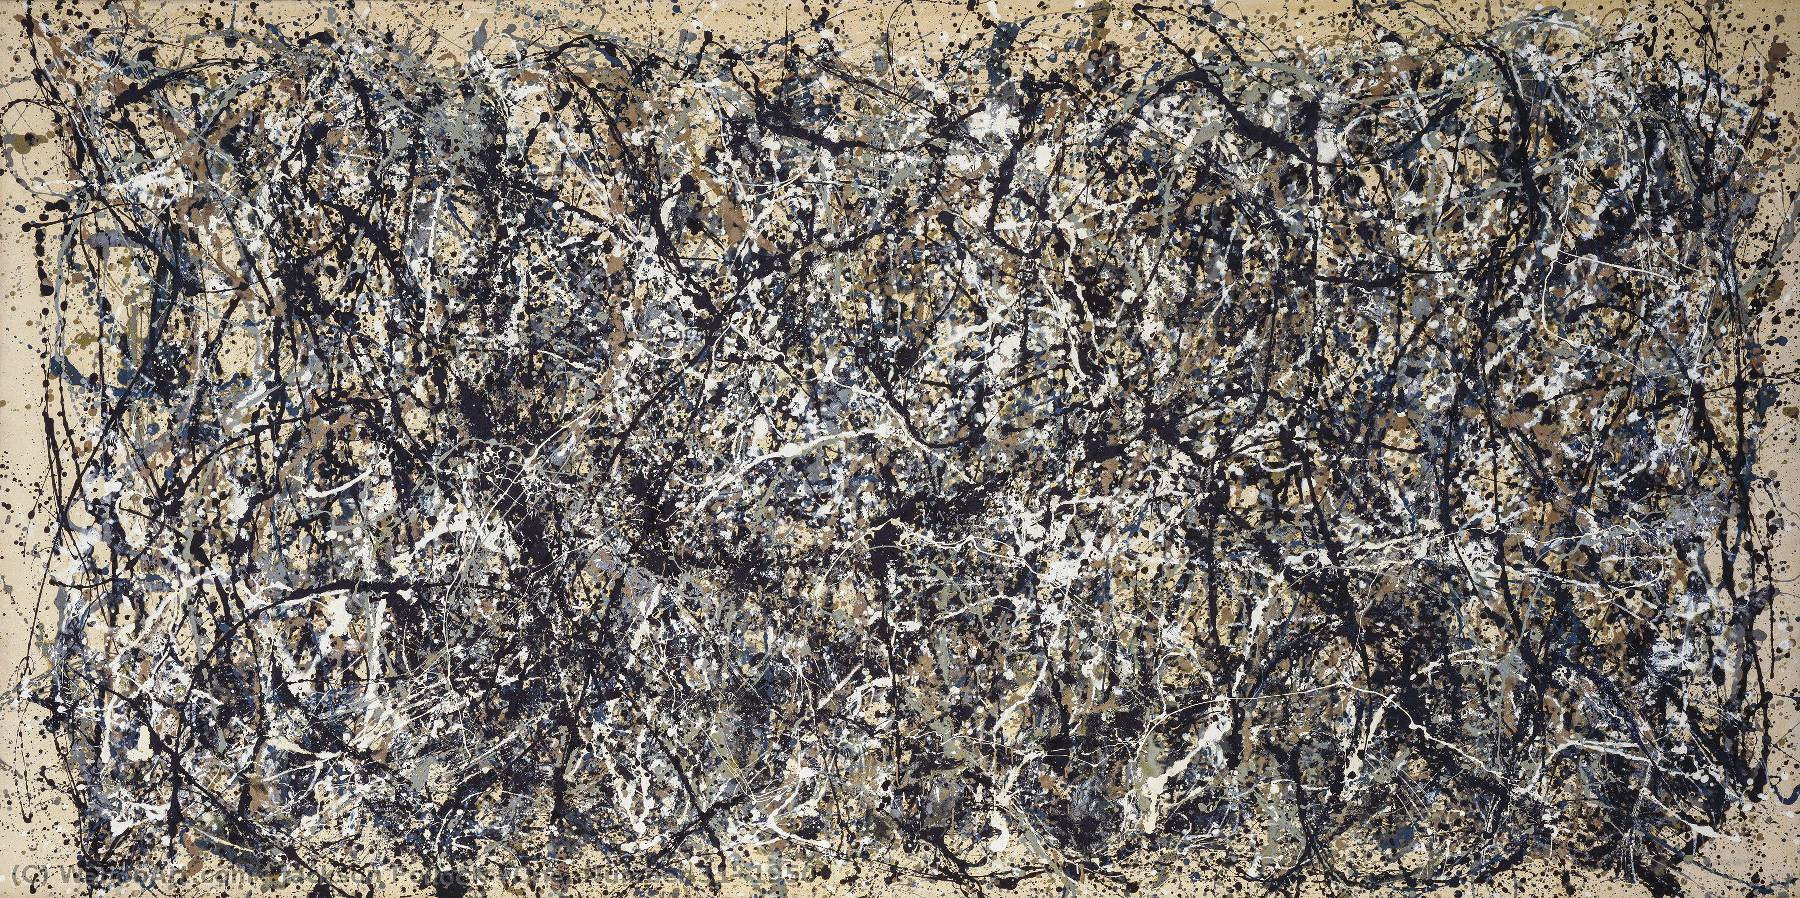 One. Number 31, 1950, Oil by Jackson Pollock